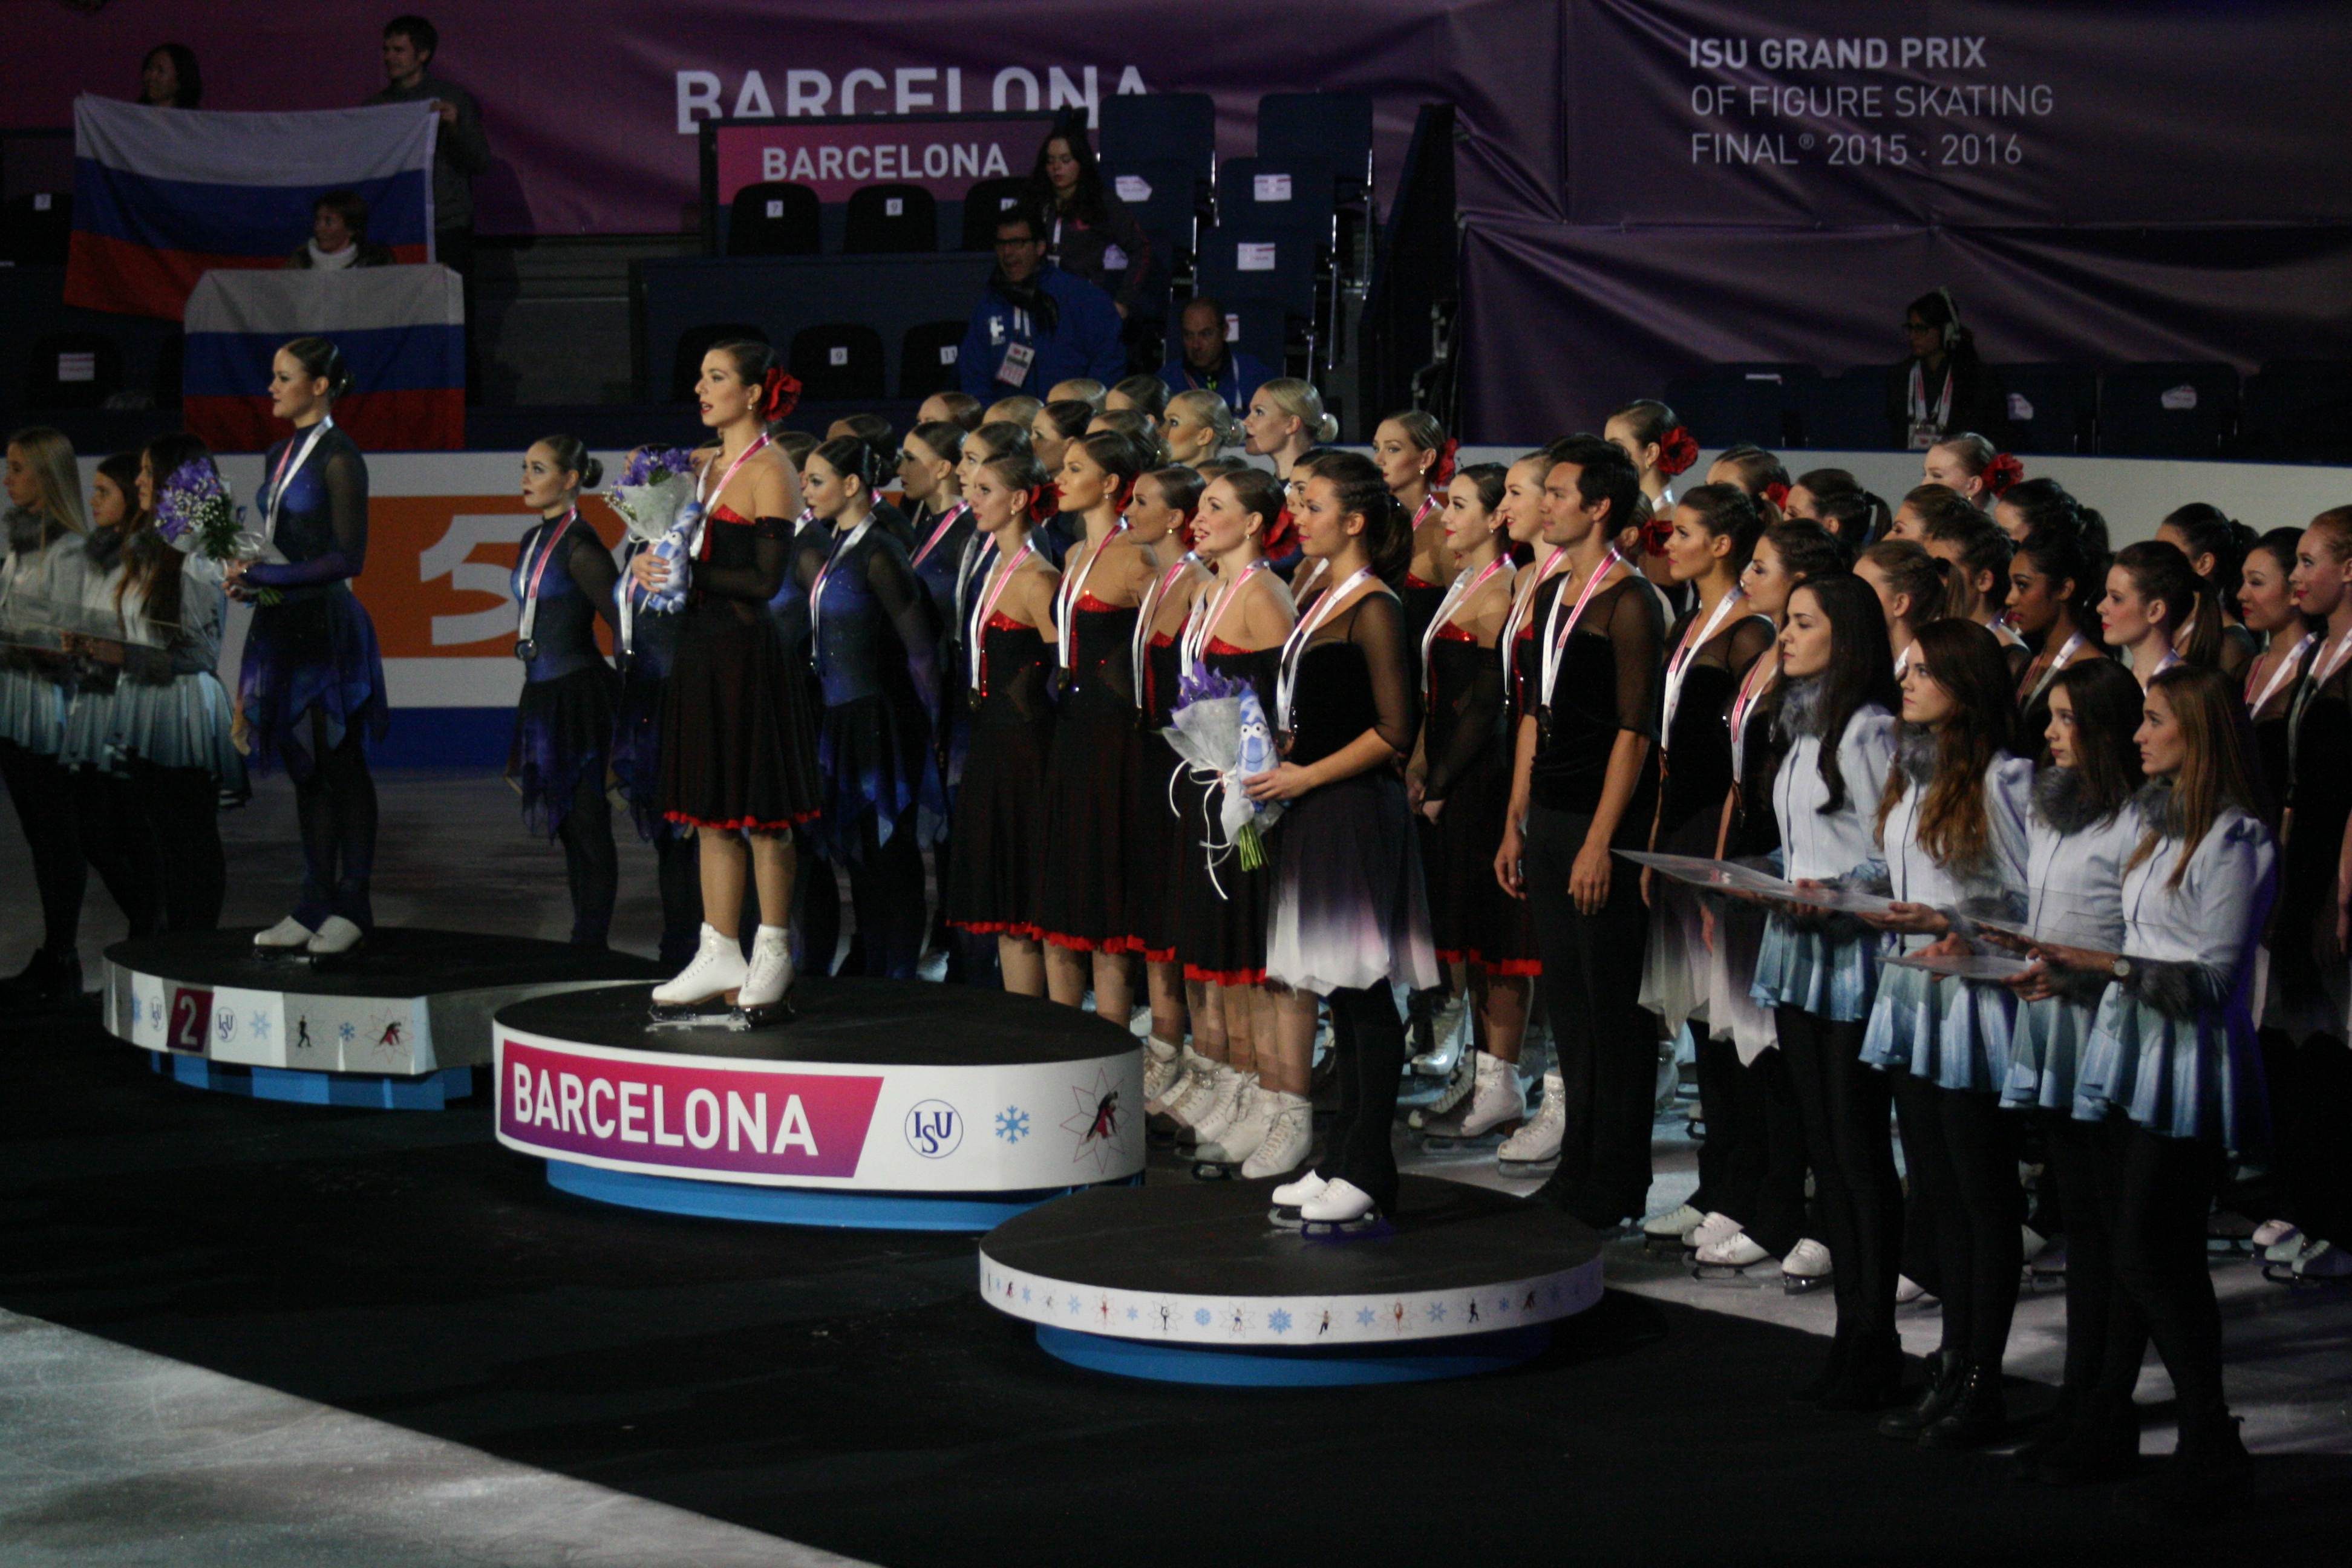 Synchronized skating competition